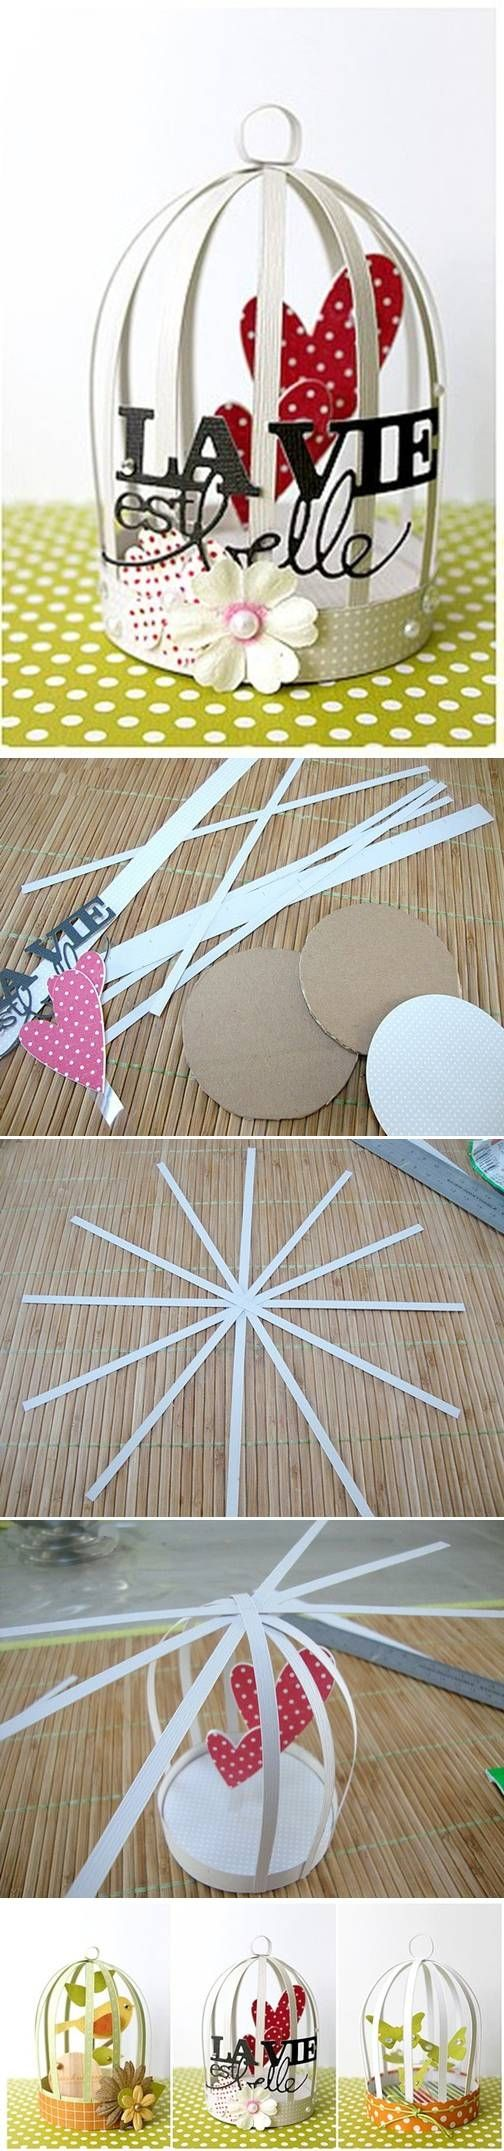 DIY Mini Decorative Cage decoration diy cage easy crafts diy ideas diy crafts do it yourself easy diy diy tips diy images do it yourself images diy photos diy pics easy diy craft ideas diy tutorial diy tutorials diy tutorial idea diy tutorial ideas